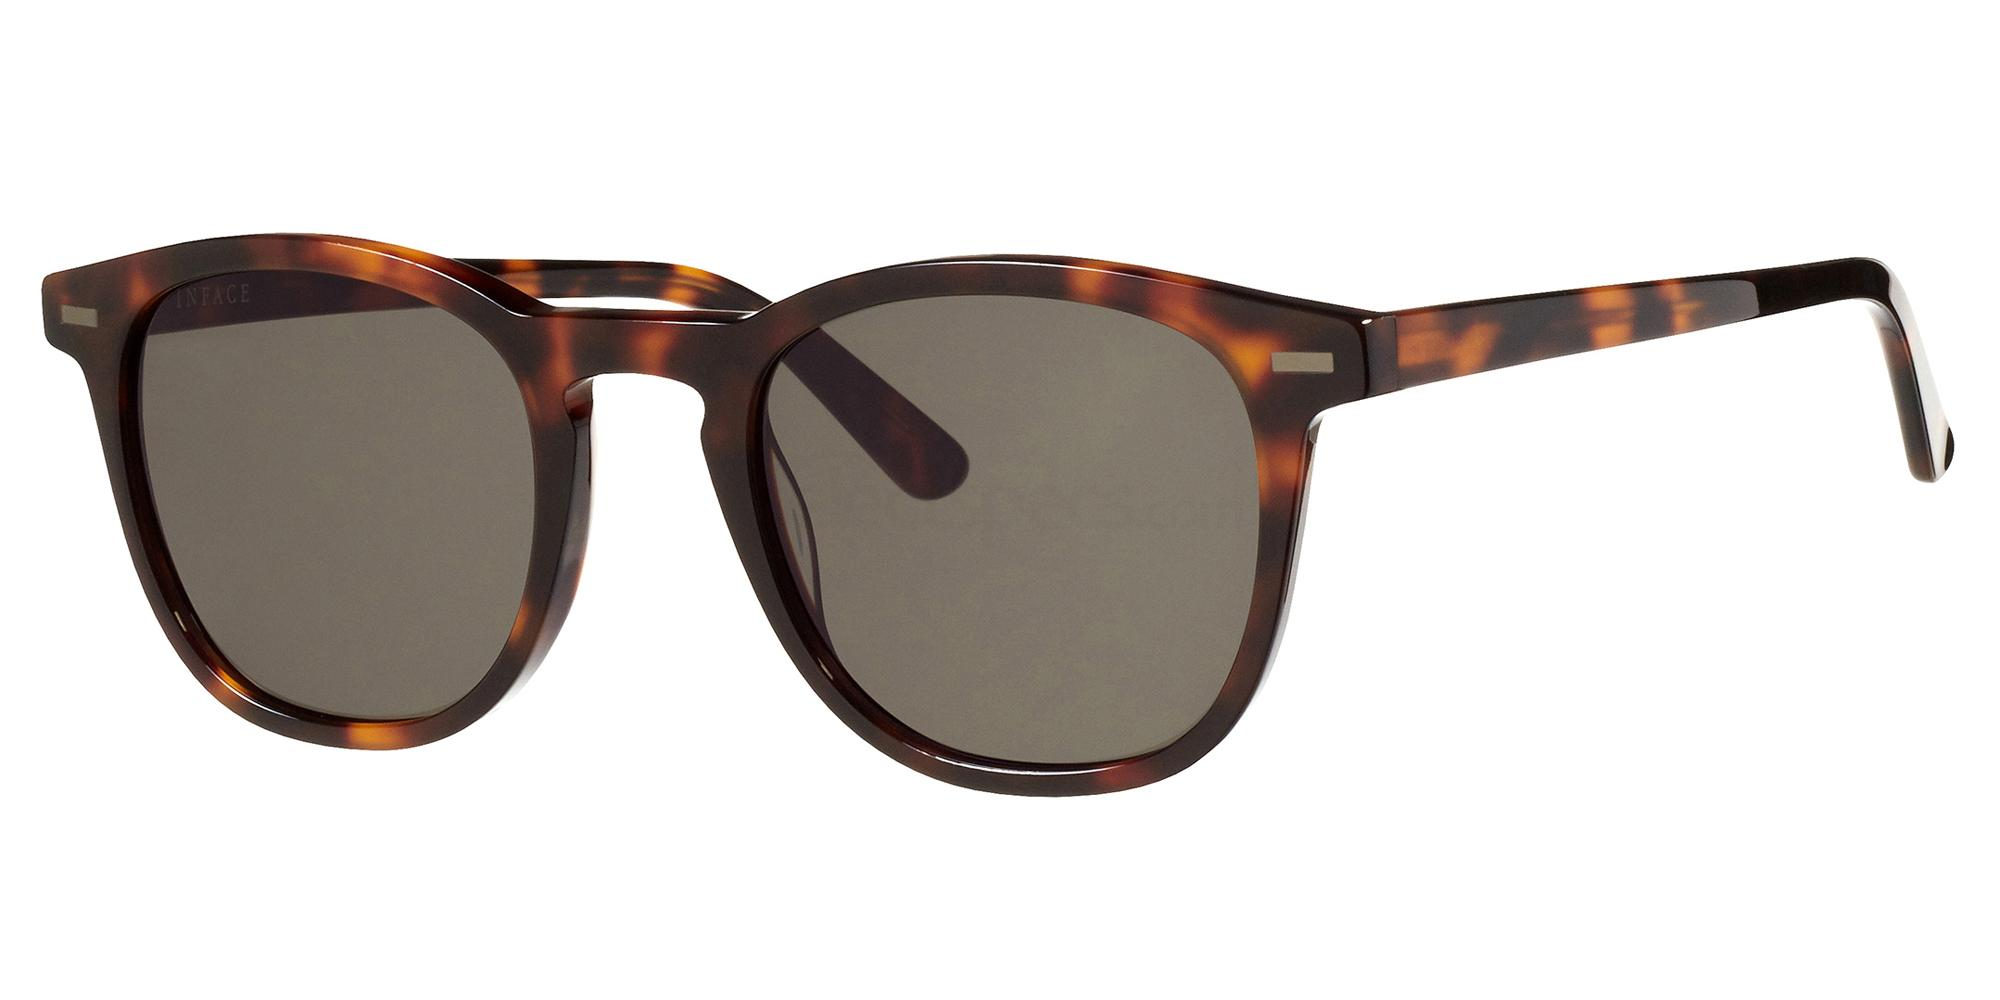 5532 IF9795 Sunglasses, Inface in Love